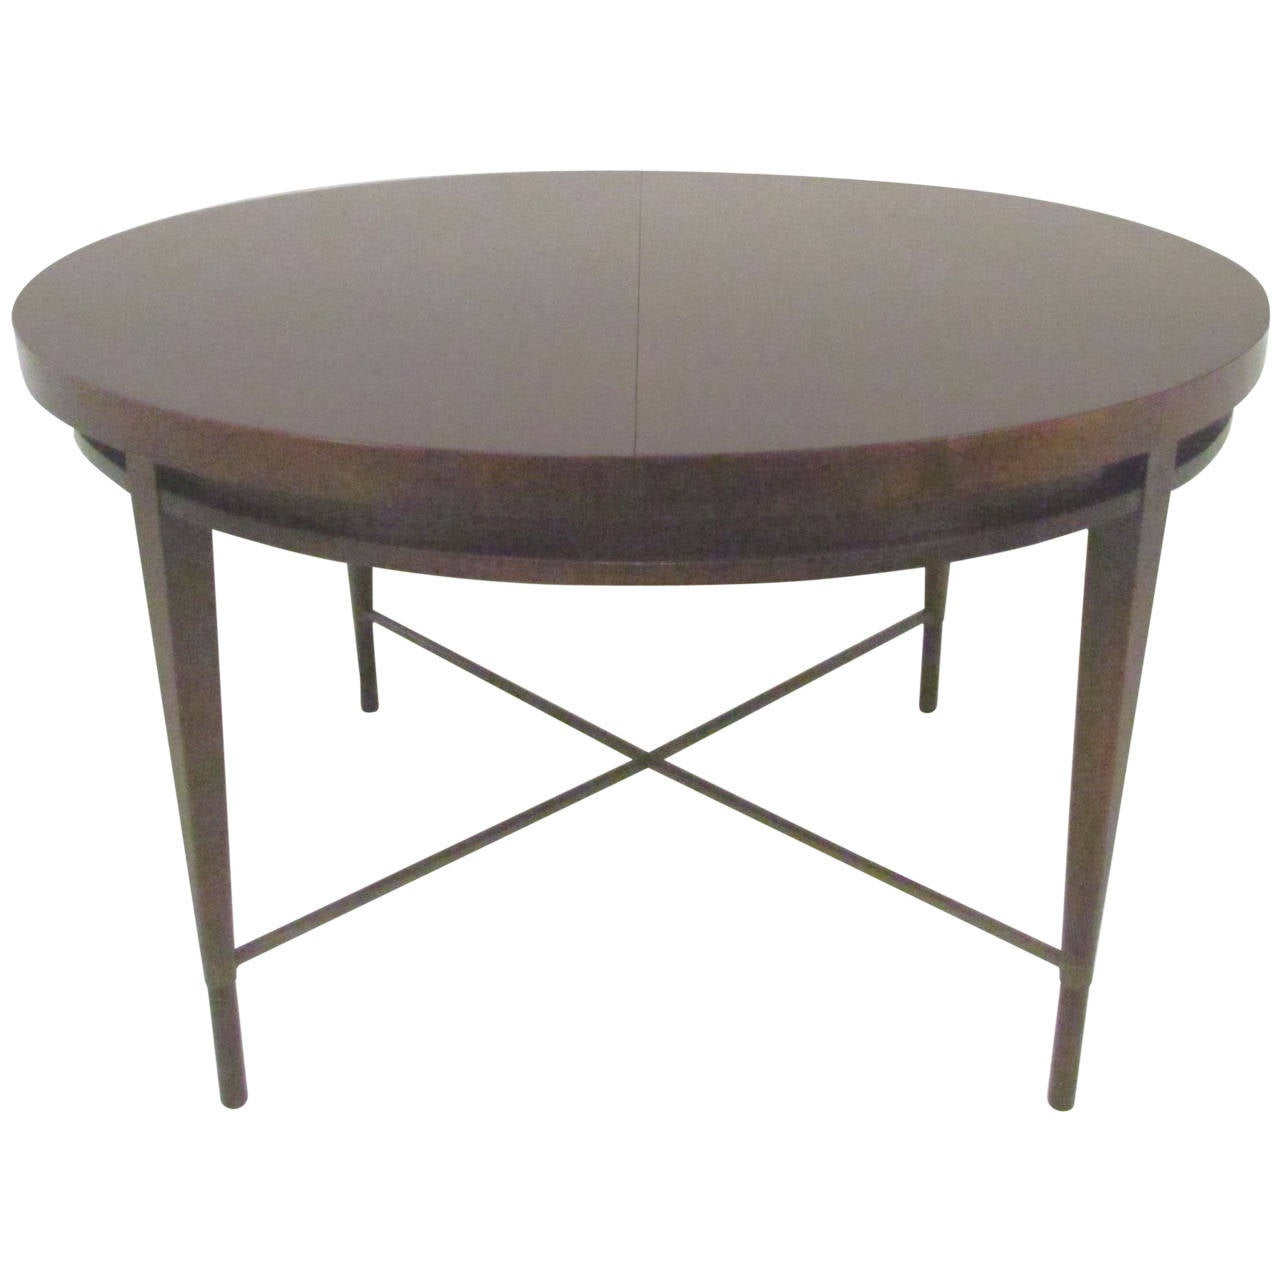 Mid century expandable dining table by paul mccobb for for Expandable furniture